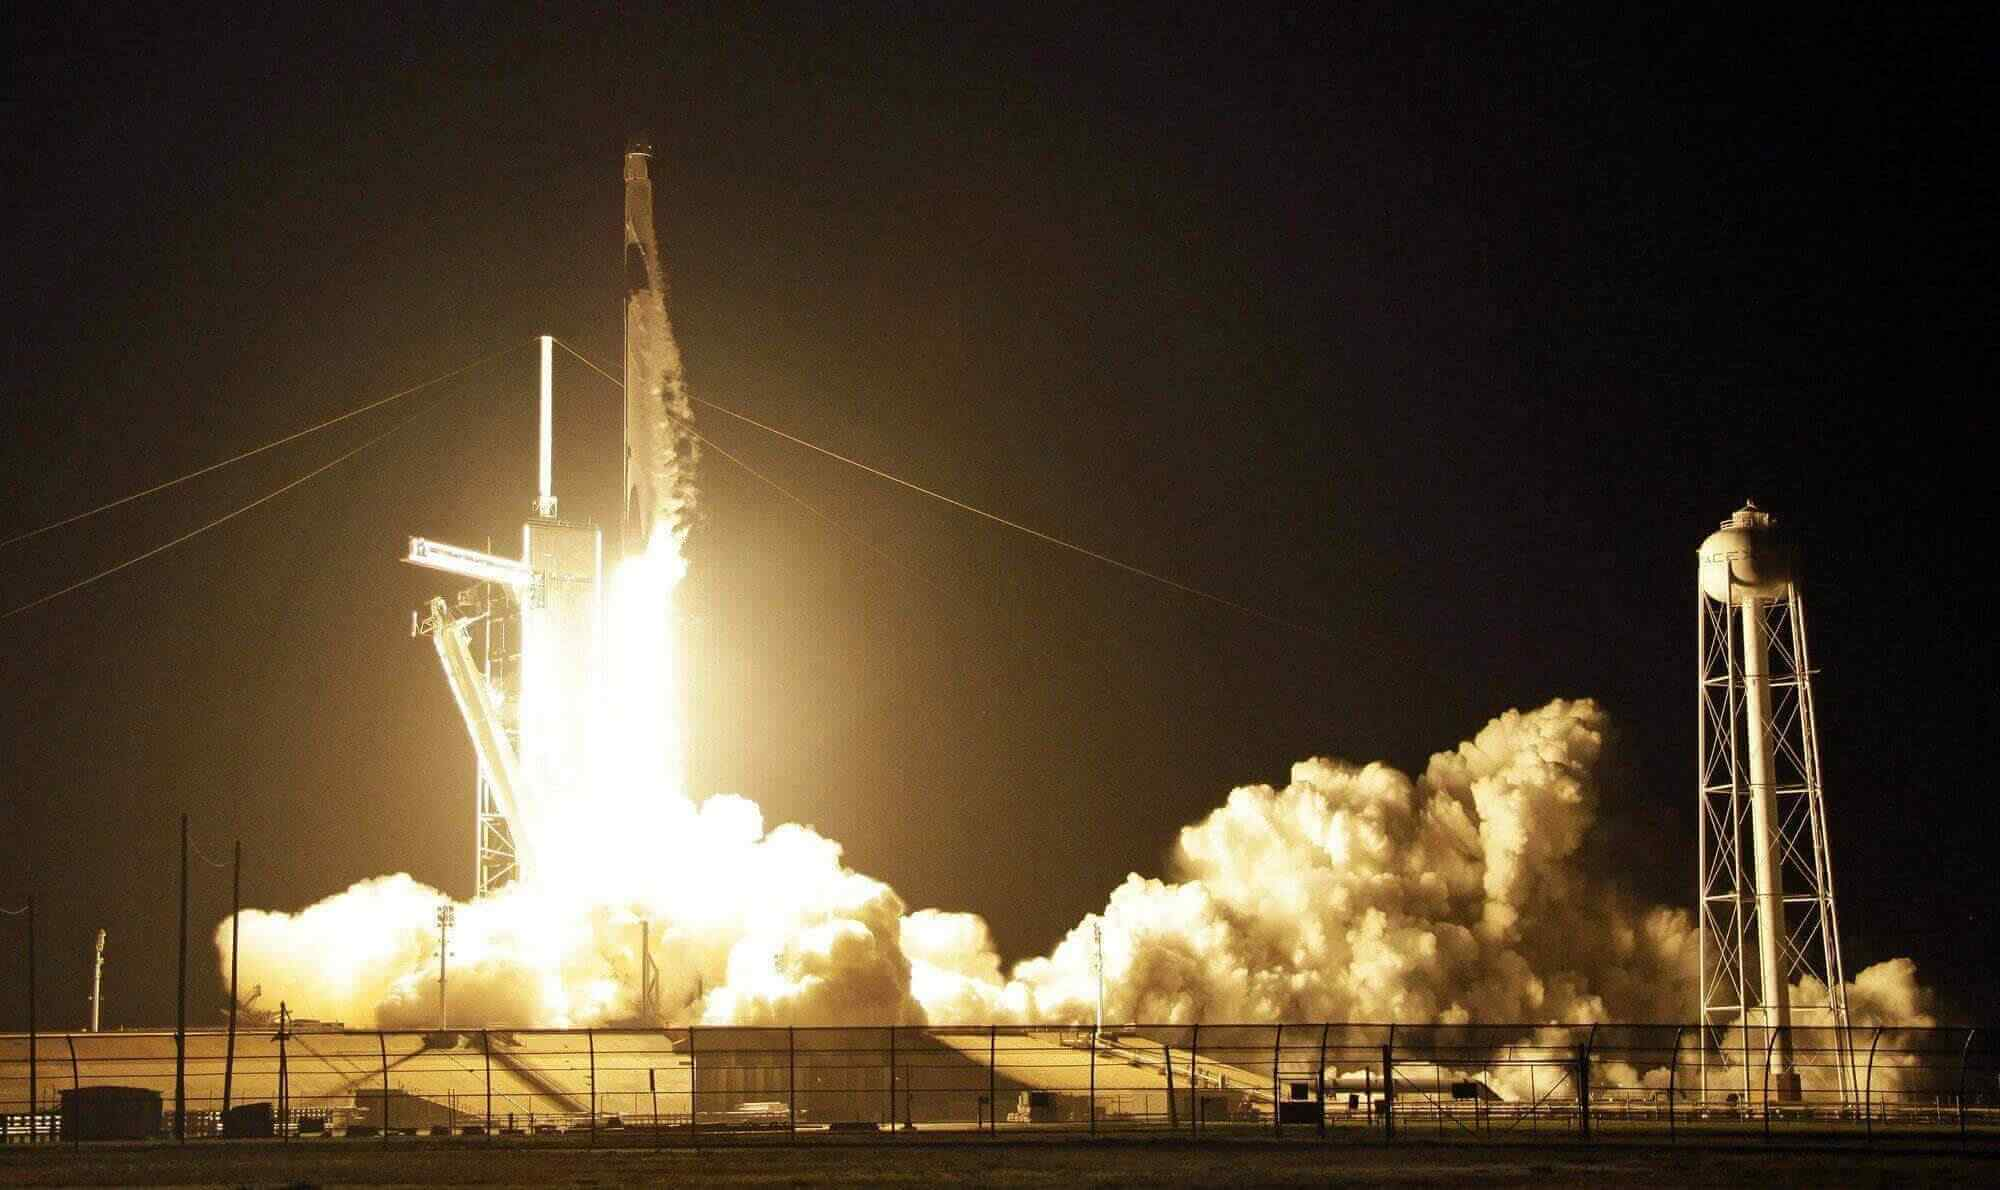 Capsule Demo By SpaceX Lifts Off